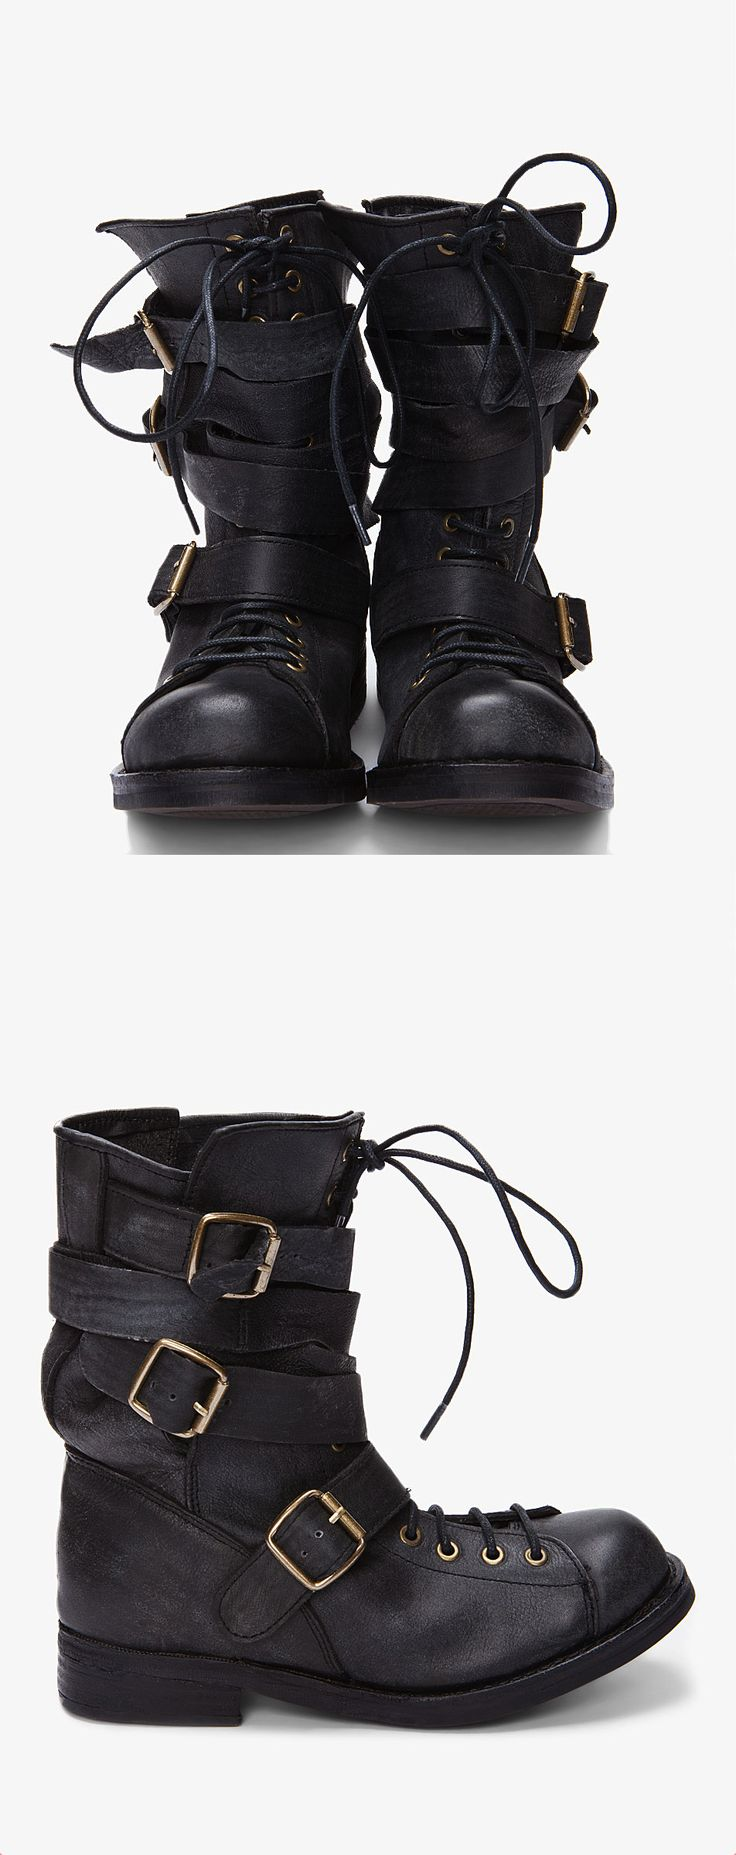 Topshop - Official Site Best brand for fashion combat boots